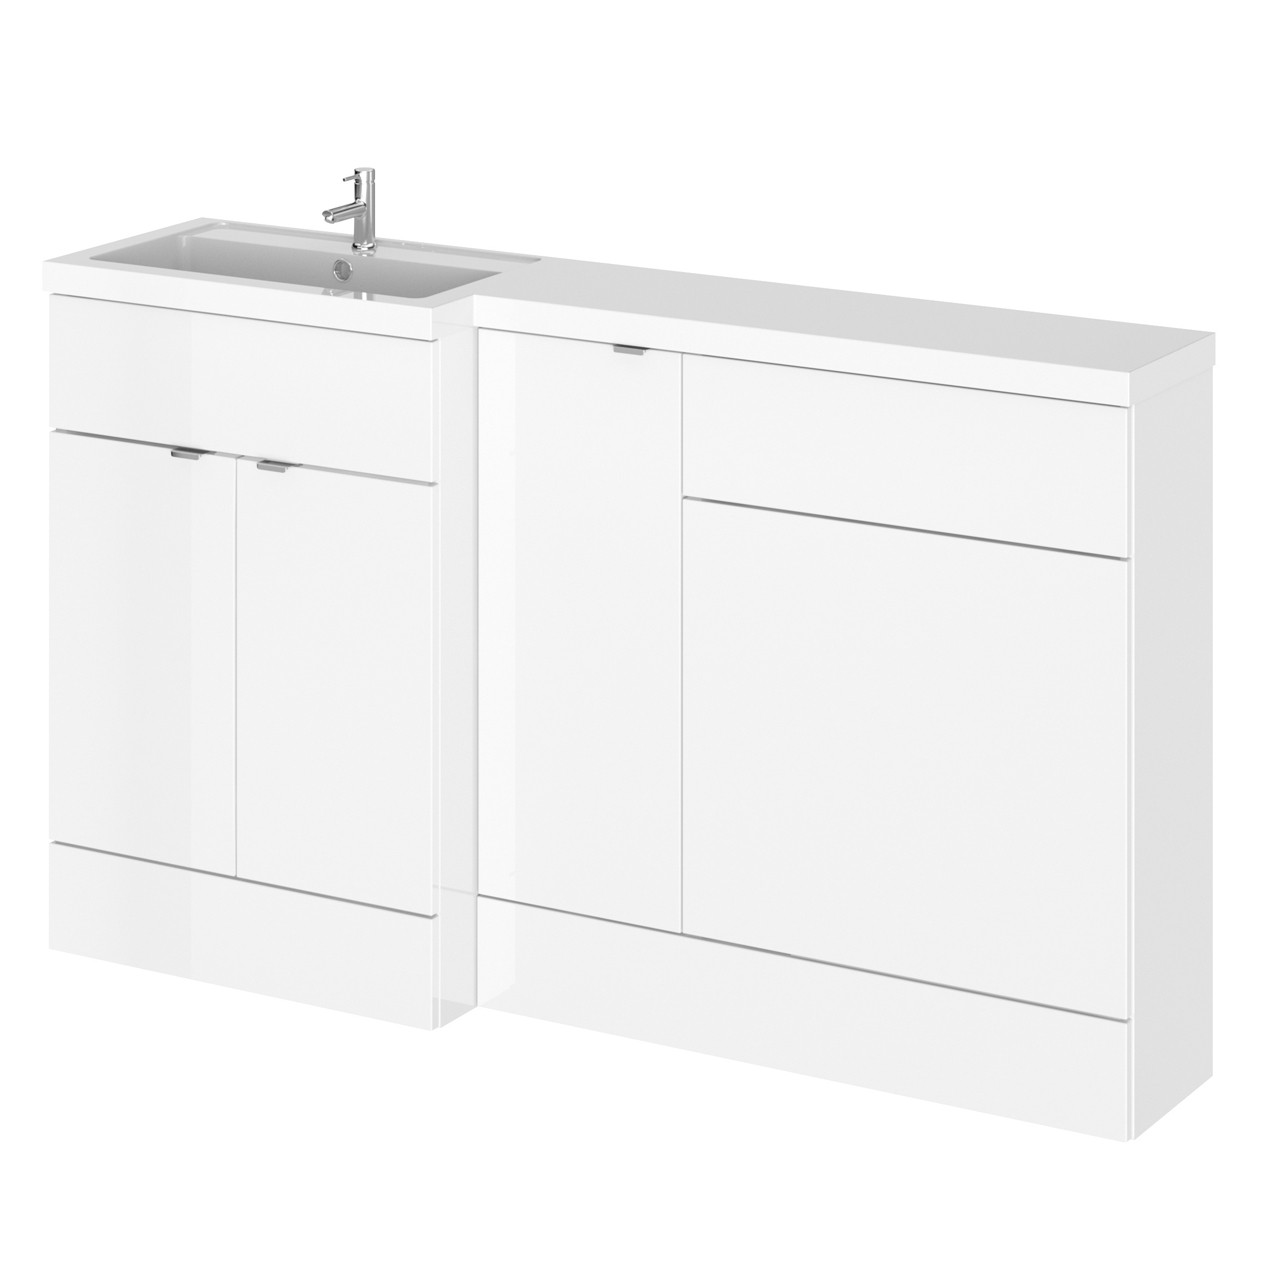 Hudson Reed Gloss White 1500mm Full Depth Combination Vanity, WC and Storage Unit with Left Hand Basin - CBI113